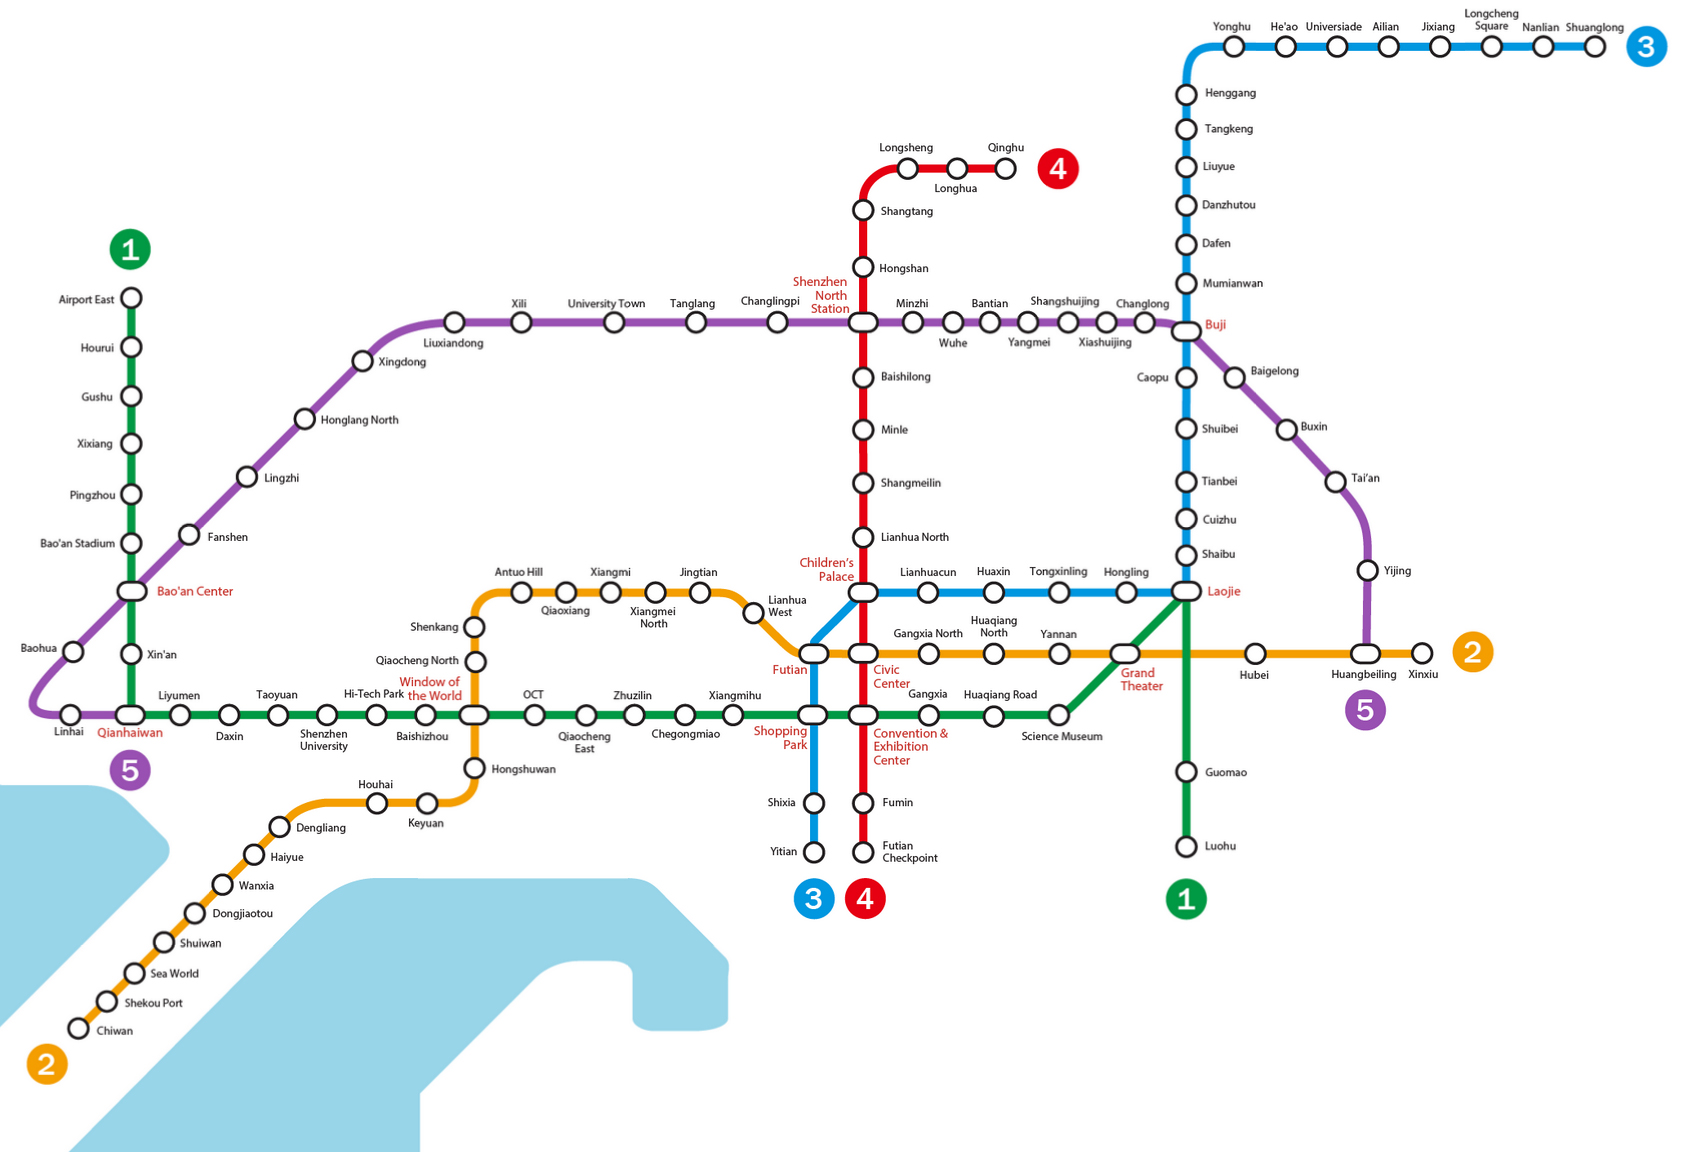 Beijing Subway Map 2017 Legend.China Subway Maps Beijing Subway Map Shanghai Subway Map